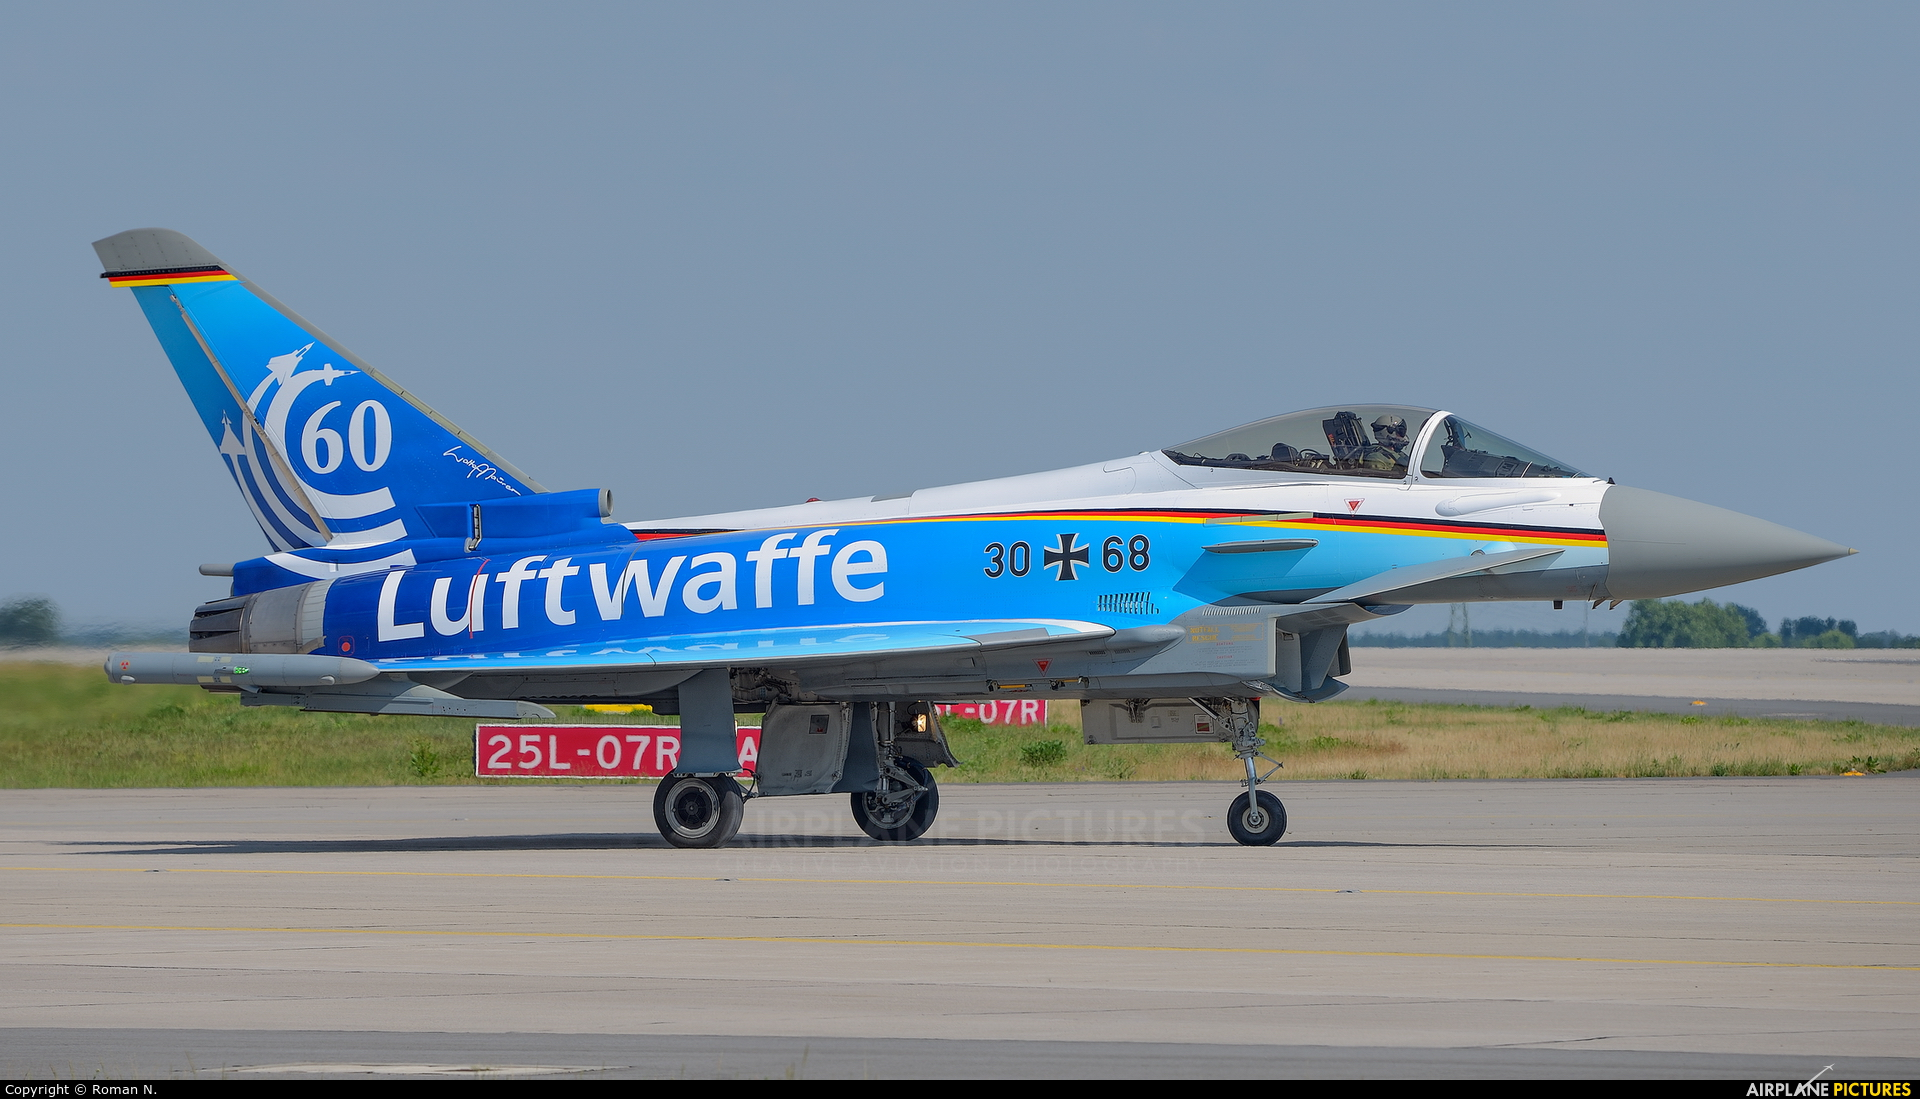 Germany - Air Force 30+68 aircraft at Berlin - Schönefeld